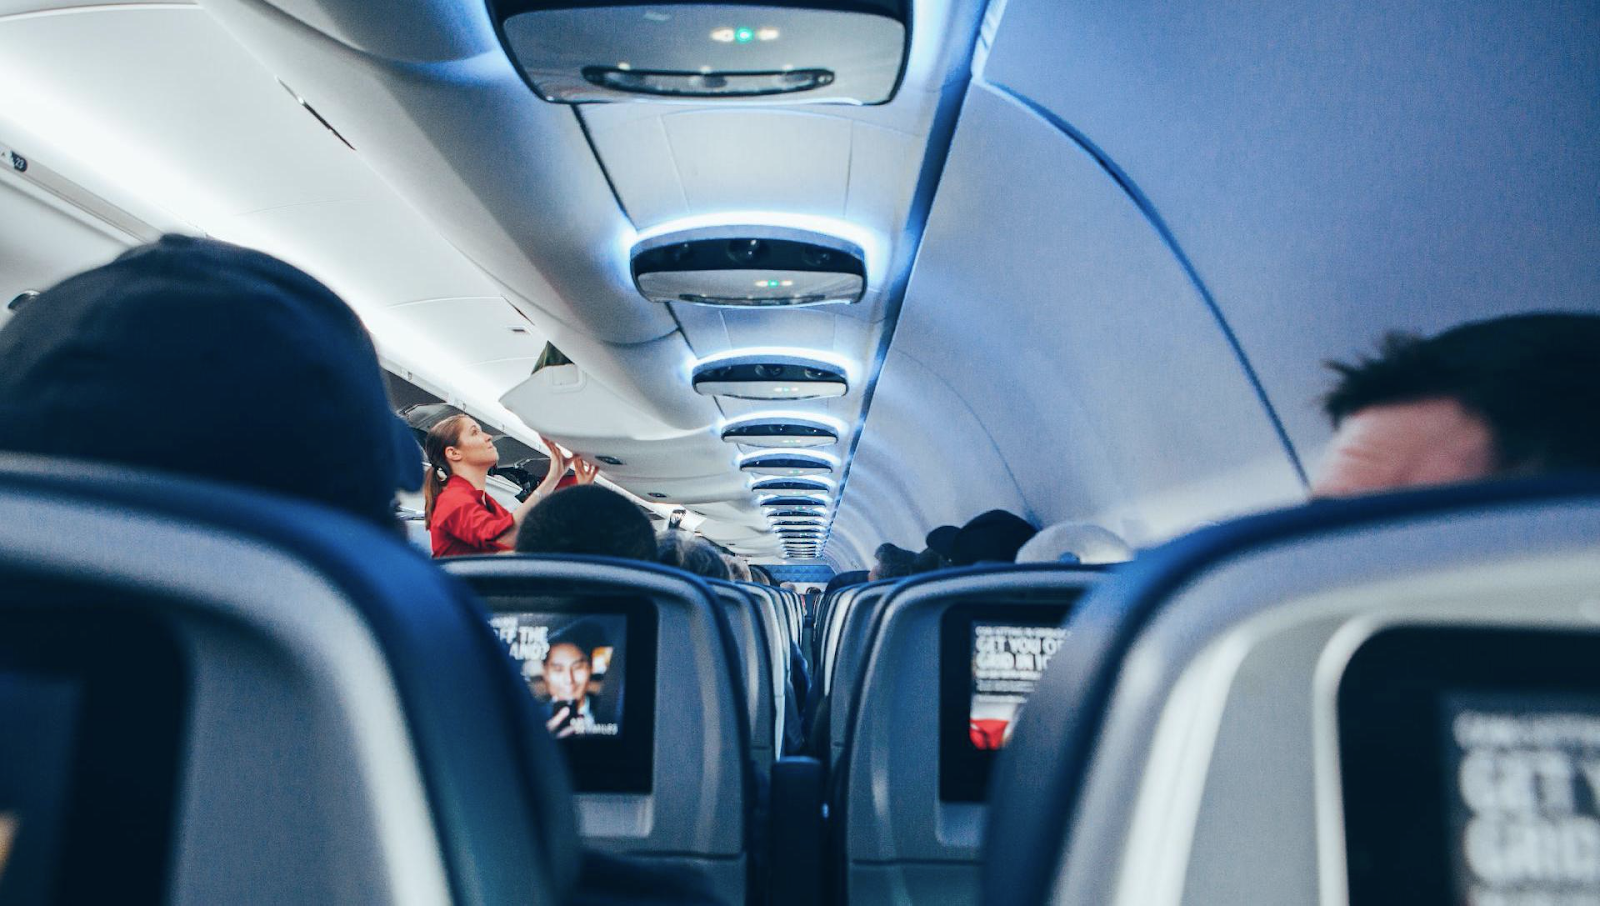 Passengers and seats inside of the international flight airplane